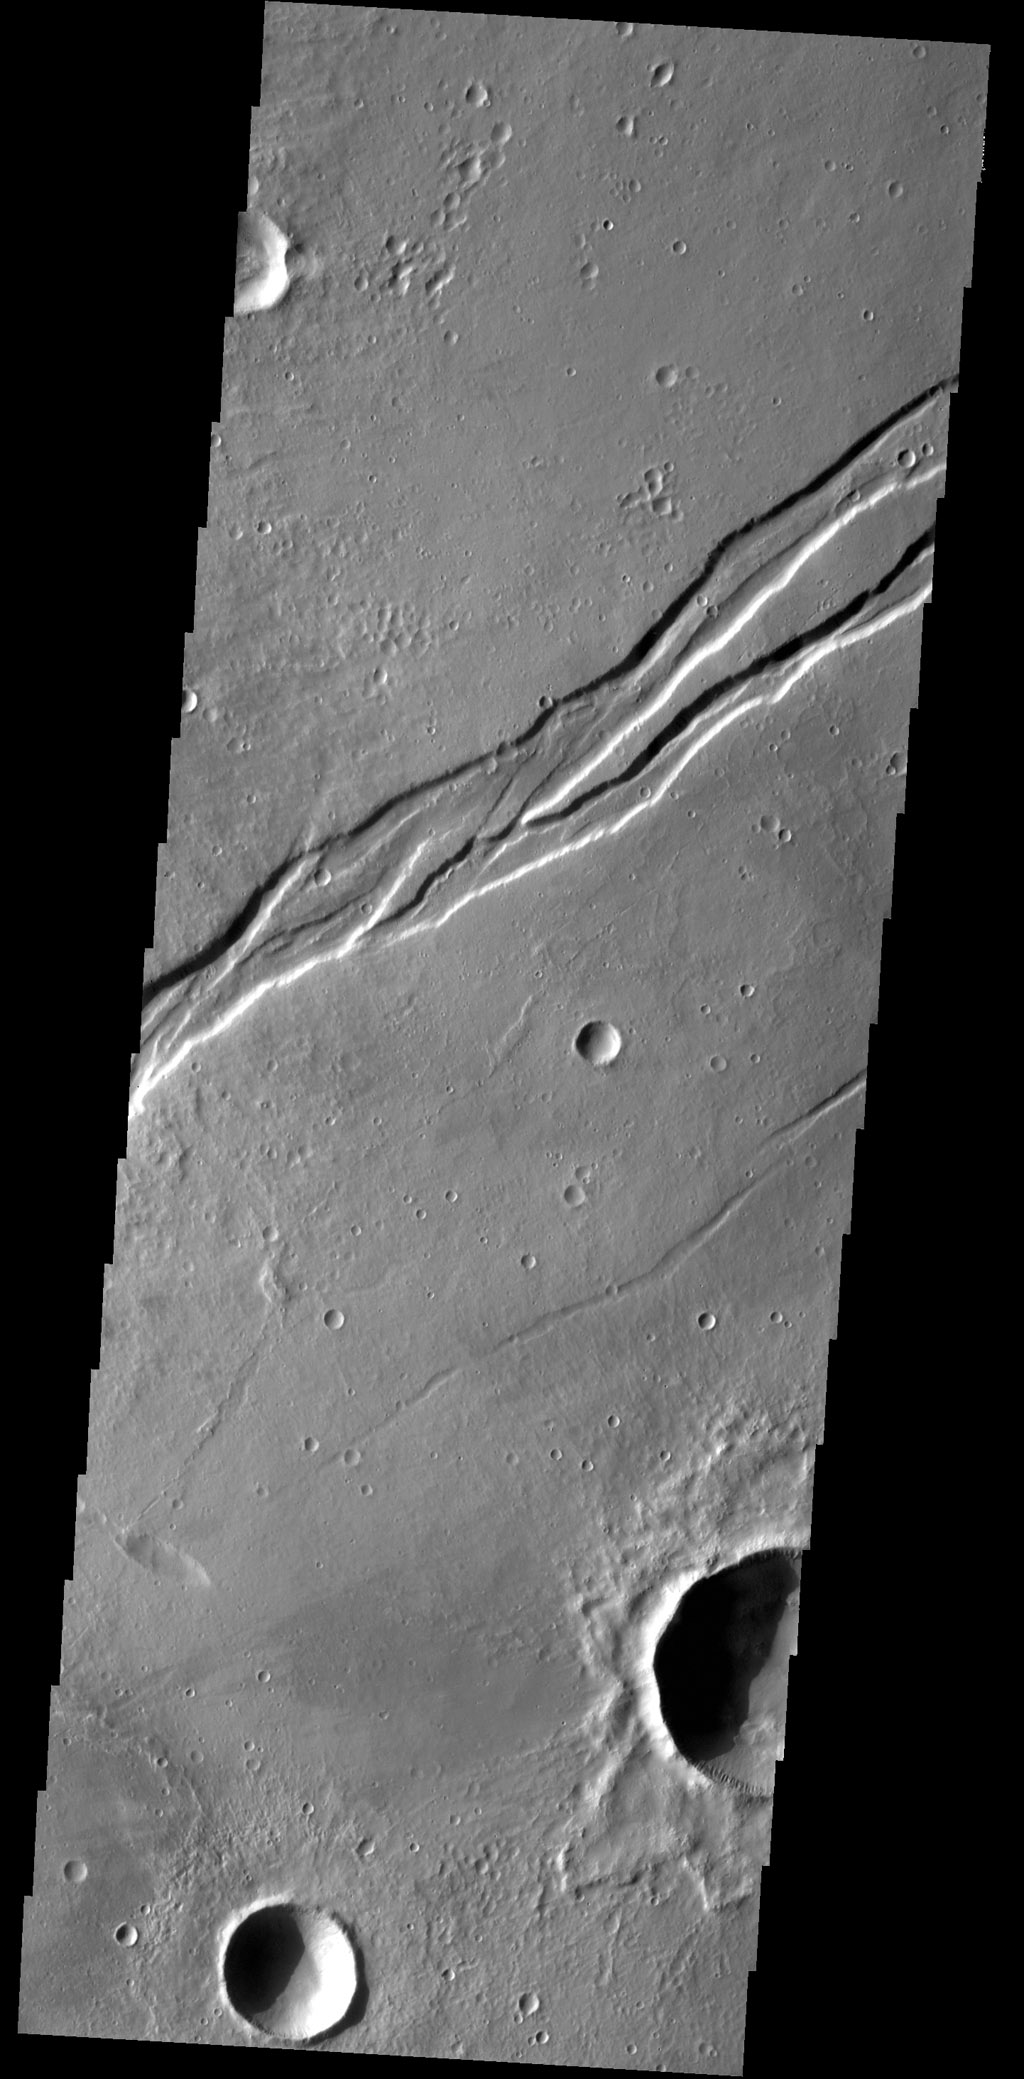 This complex graben is part of Labeatis Fossae. This image was captured by NASA's 2001 Mars Odyssey spacecraft.